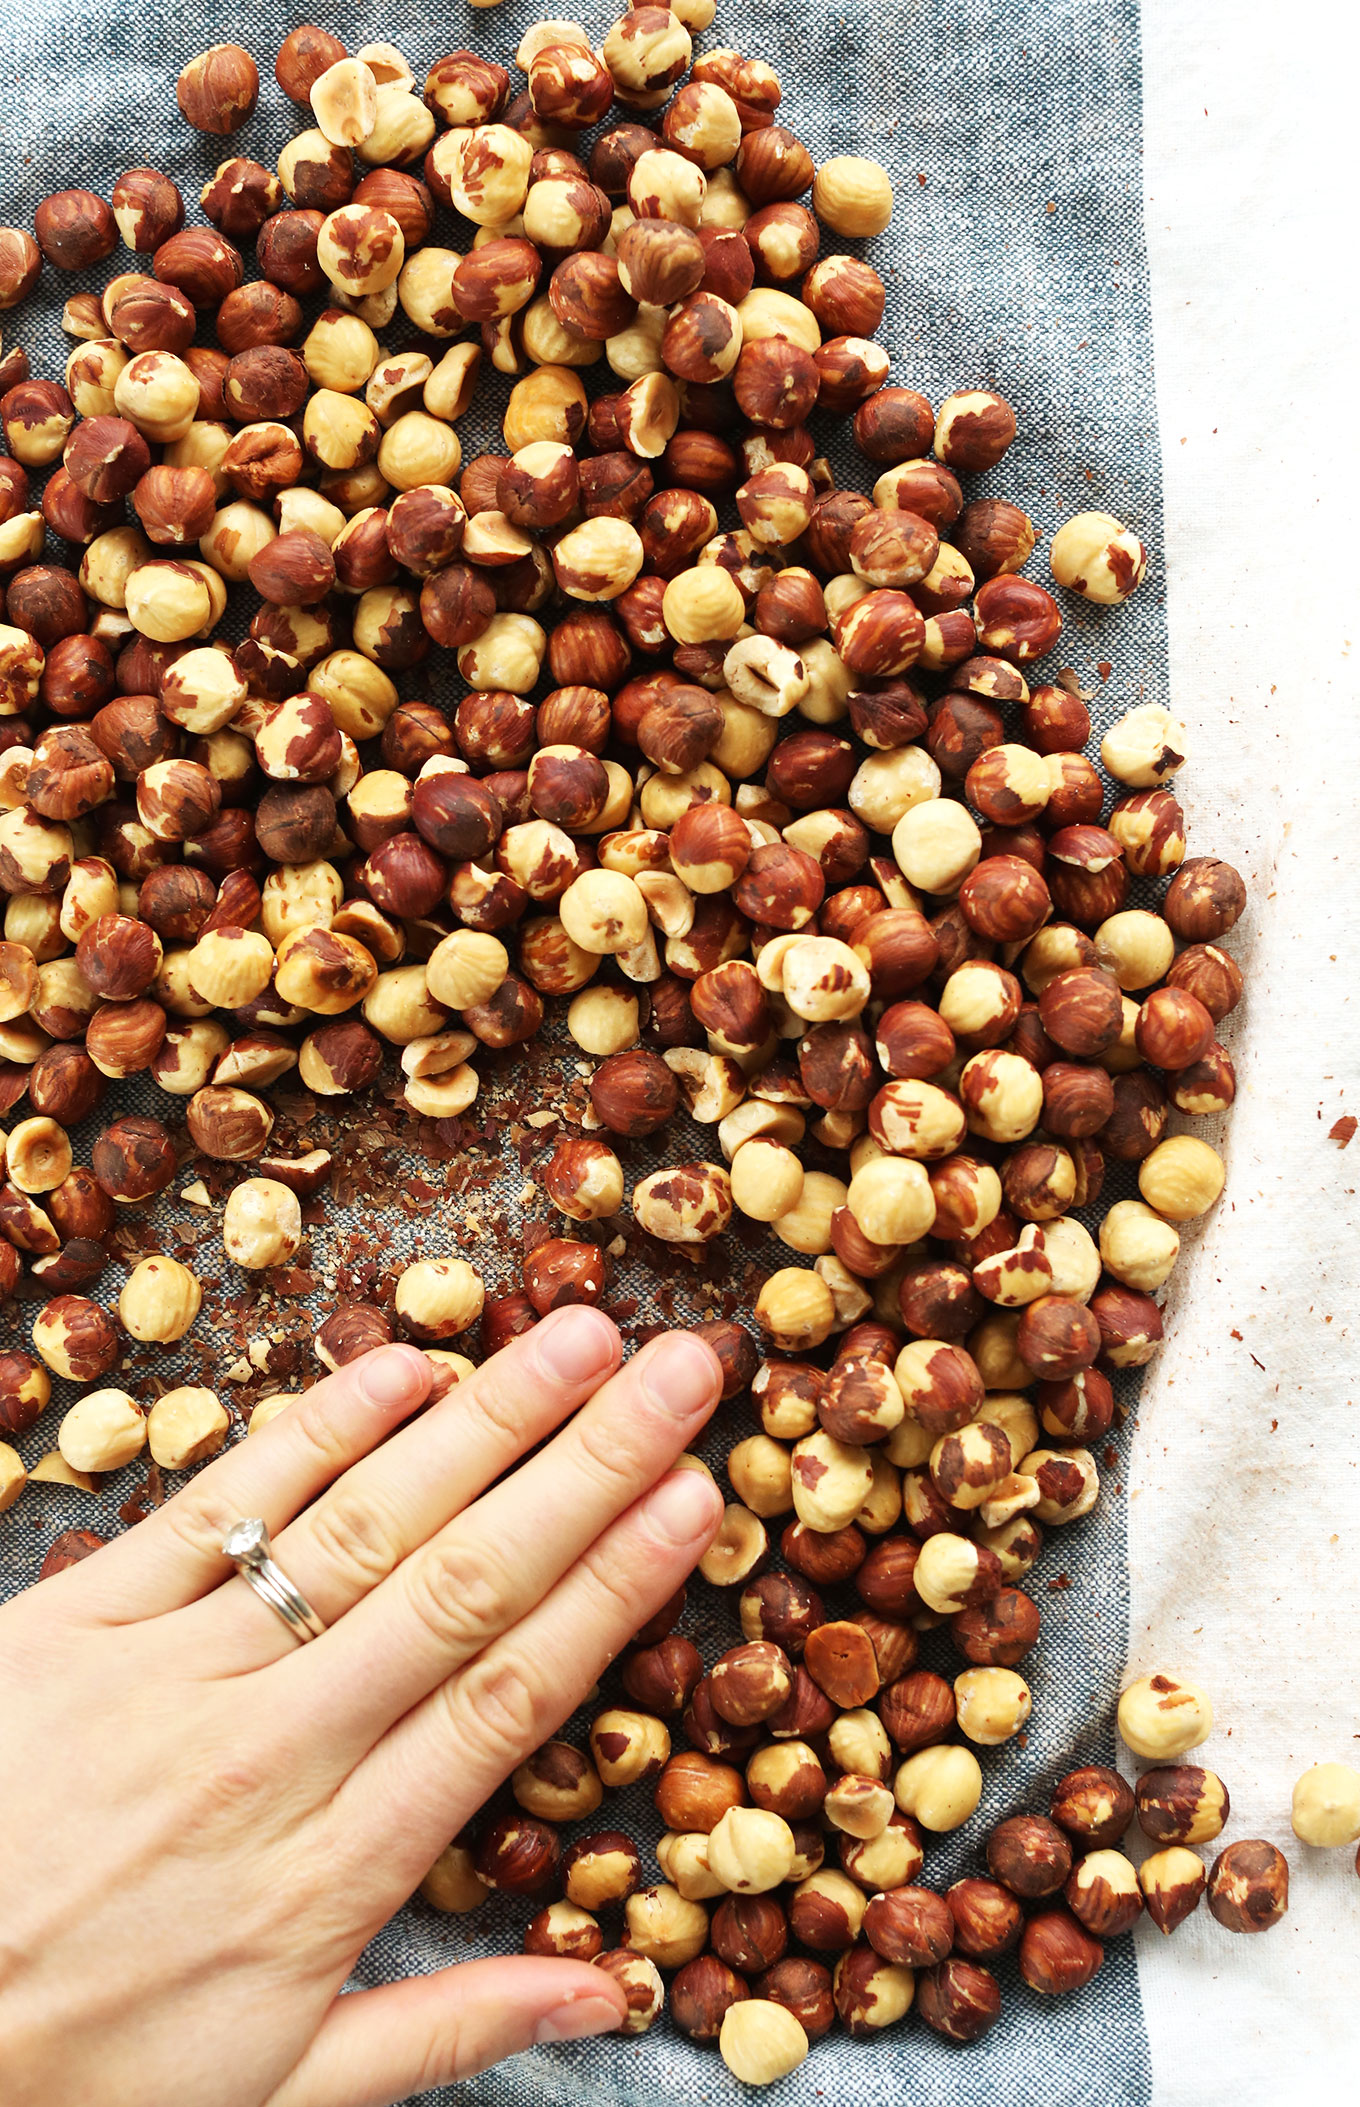 Rolling roasted hazelnuts in a towel to remove skins